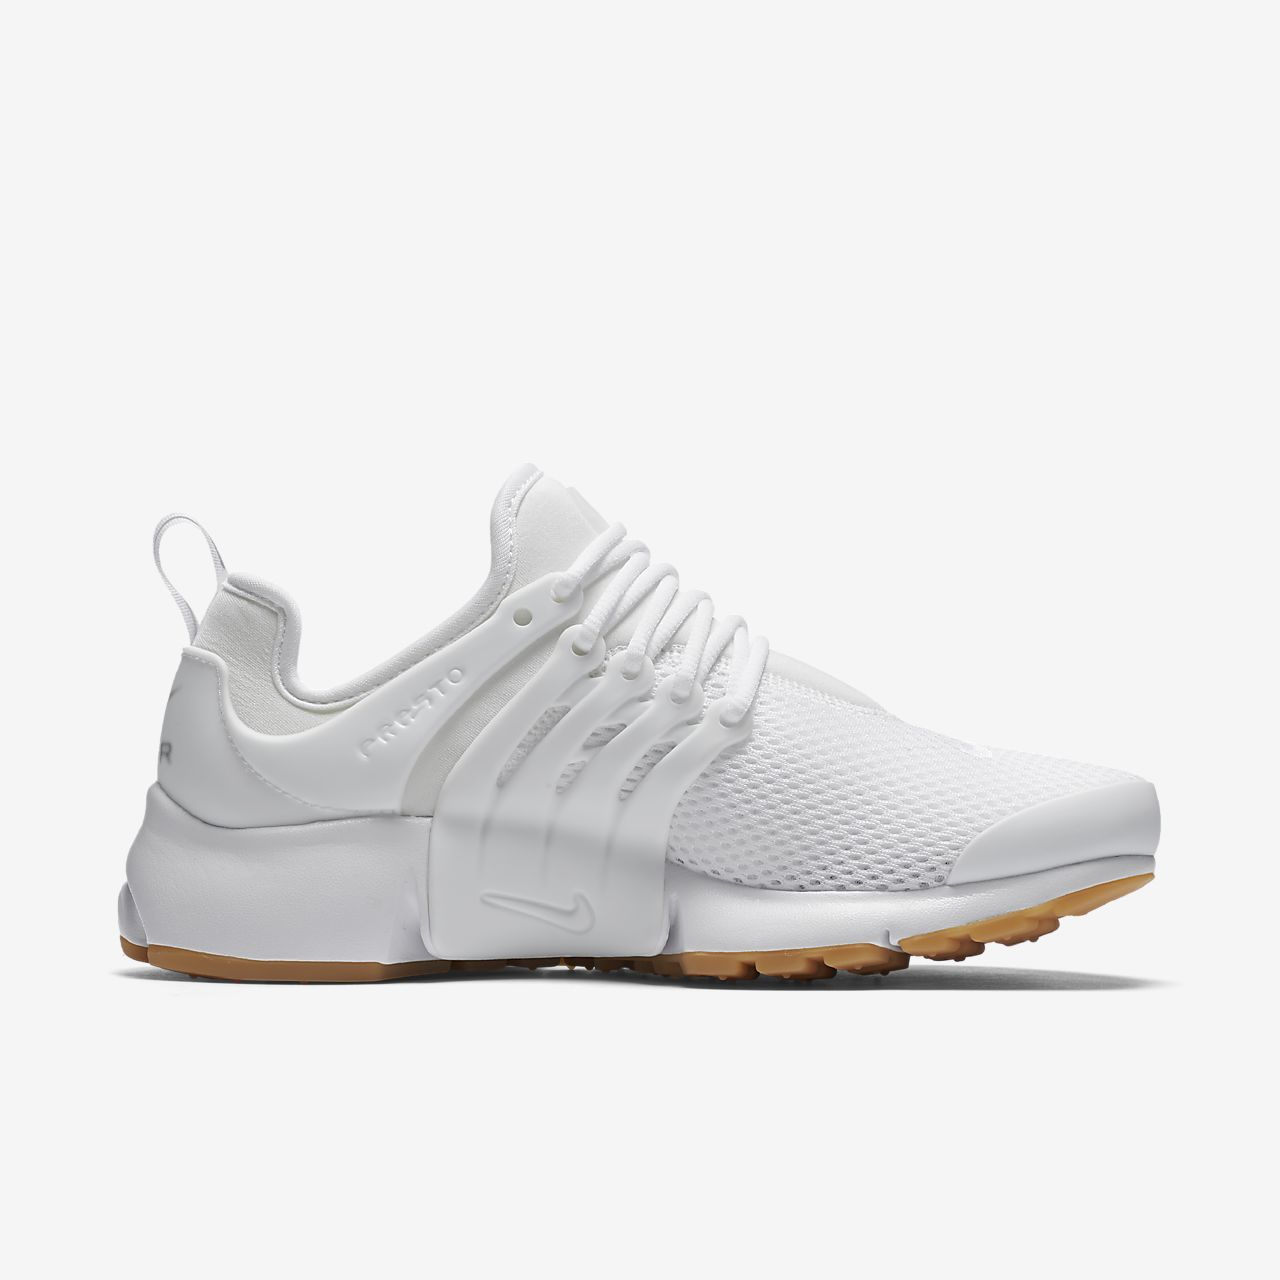 presto women Shop the latest selection of womens nike presto at lady foot locker with stores across the nation, and some of the hottest brands and latest trends, lady footlocker makes it easy to find great footwear and apparel for women all in one place.